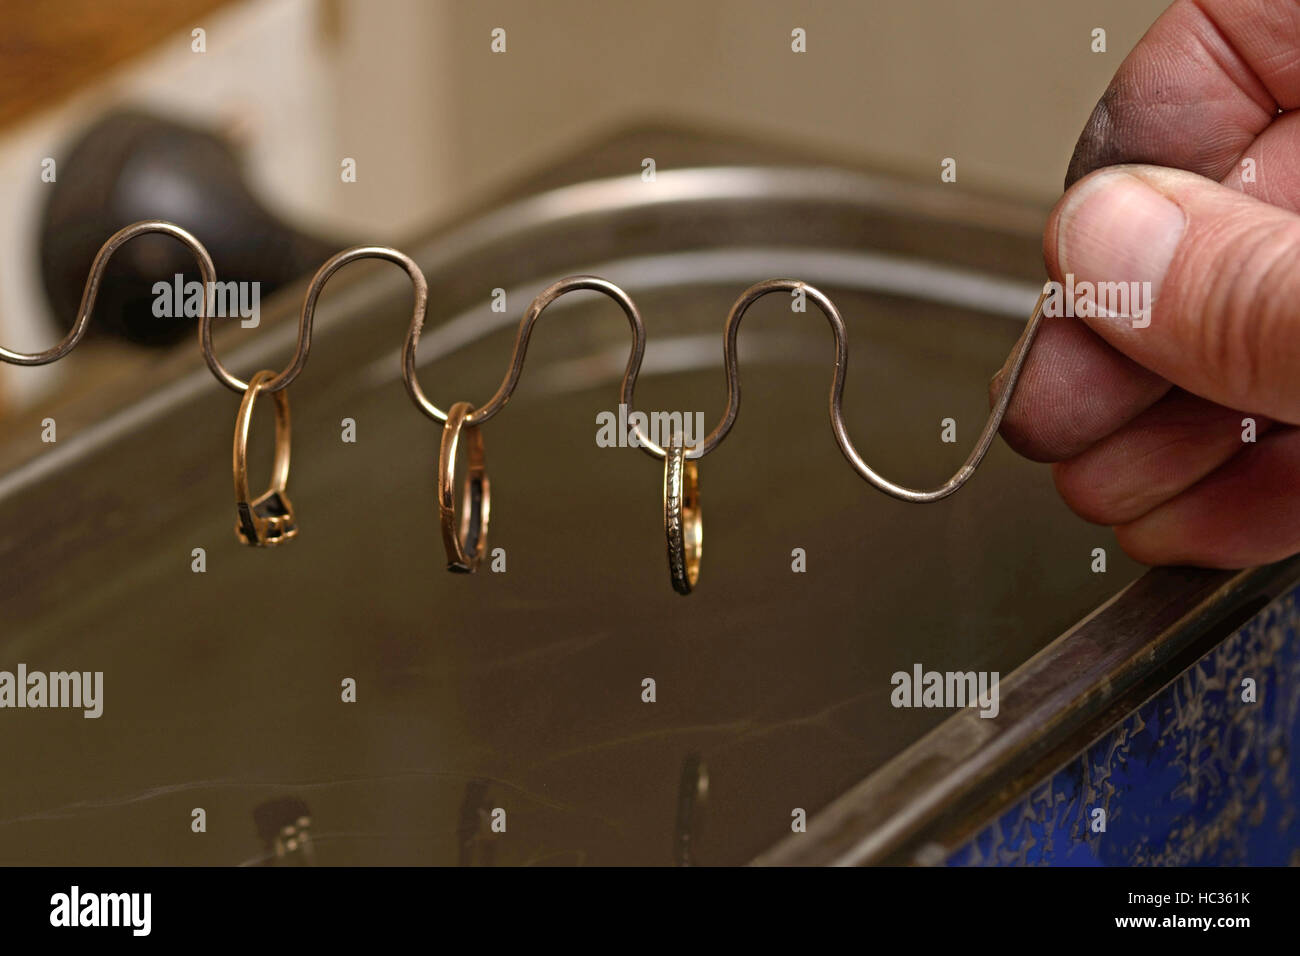 A goldsmith cleans some gold rings in an ultrasonic bath which uses sound waves to dislodge particles from the metal - Stock Image